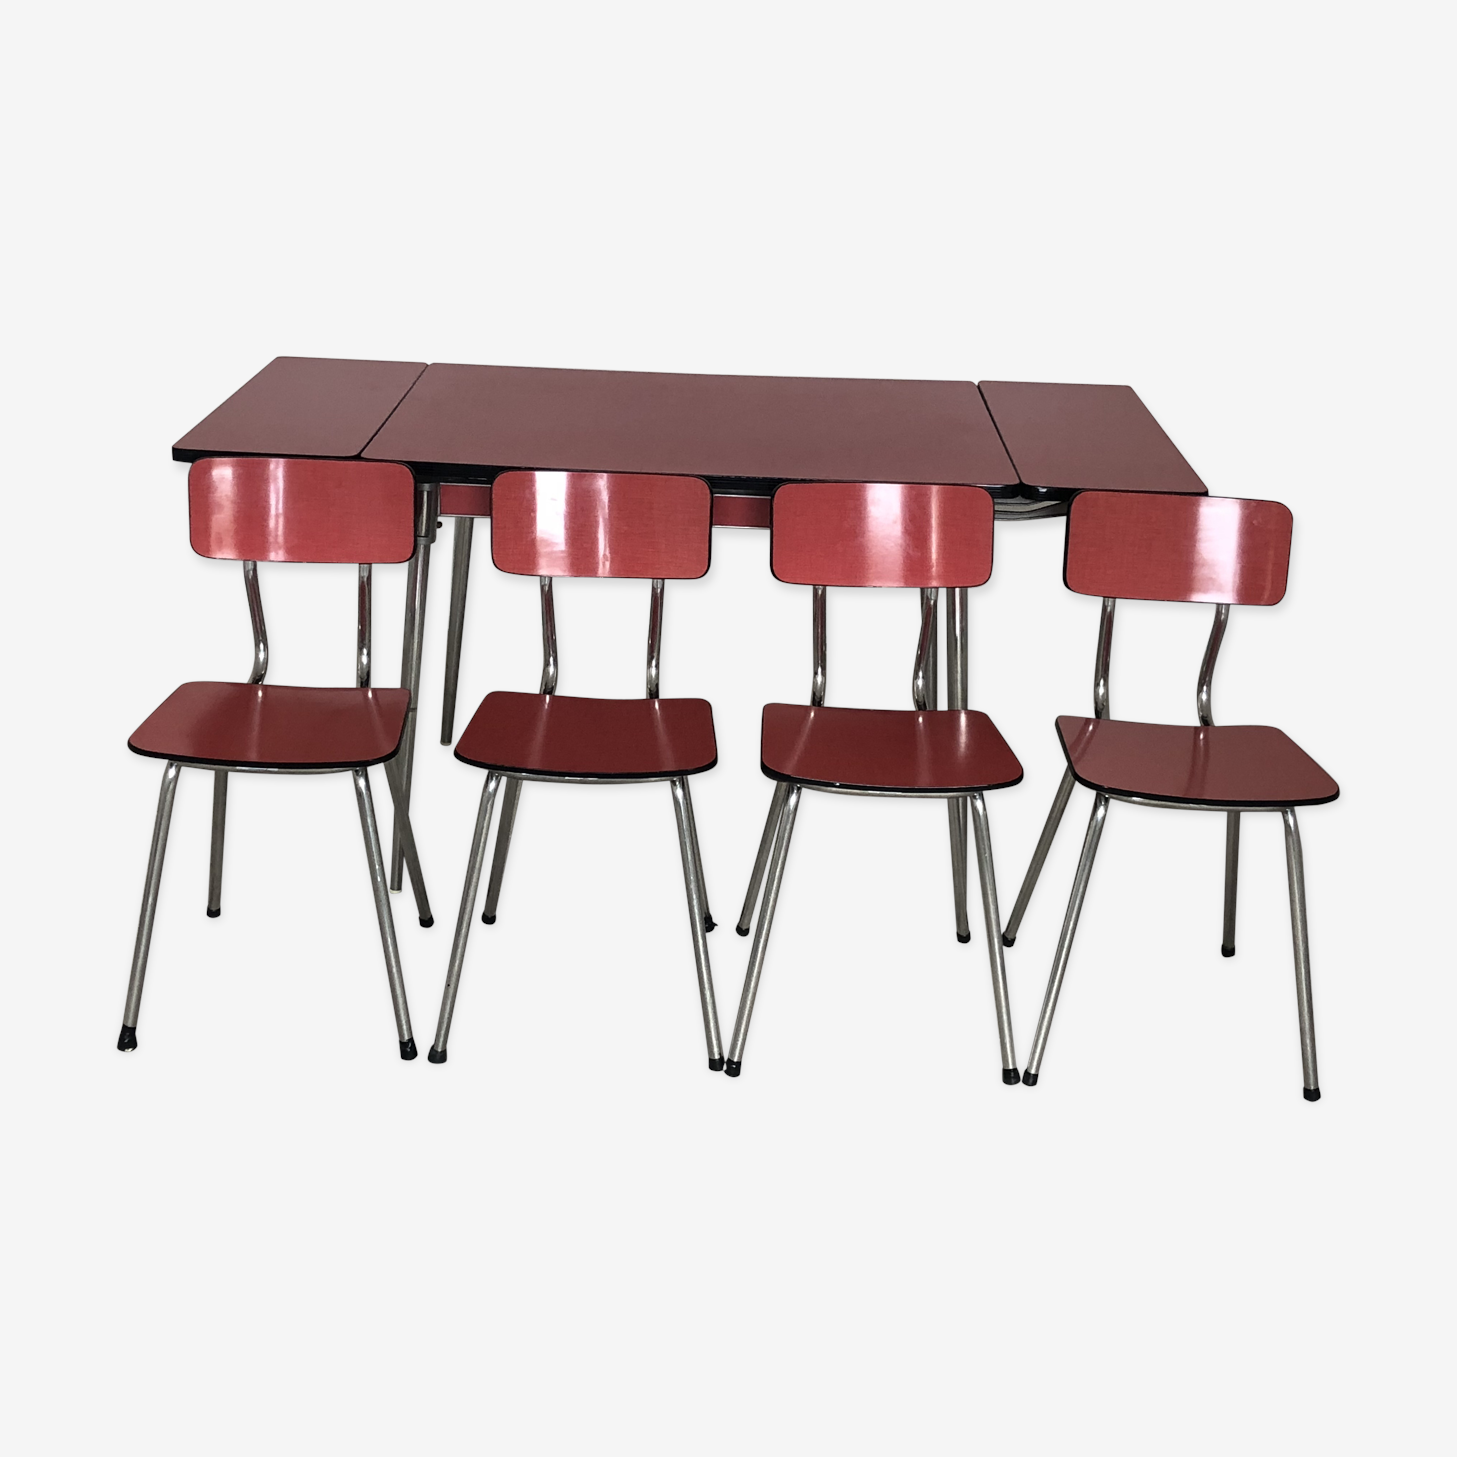 Table formica rouge & 4 chaises